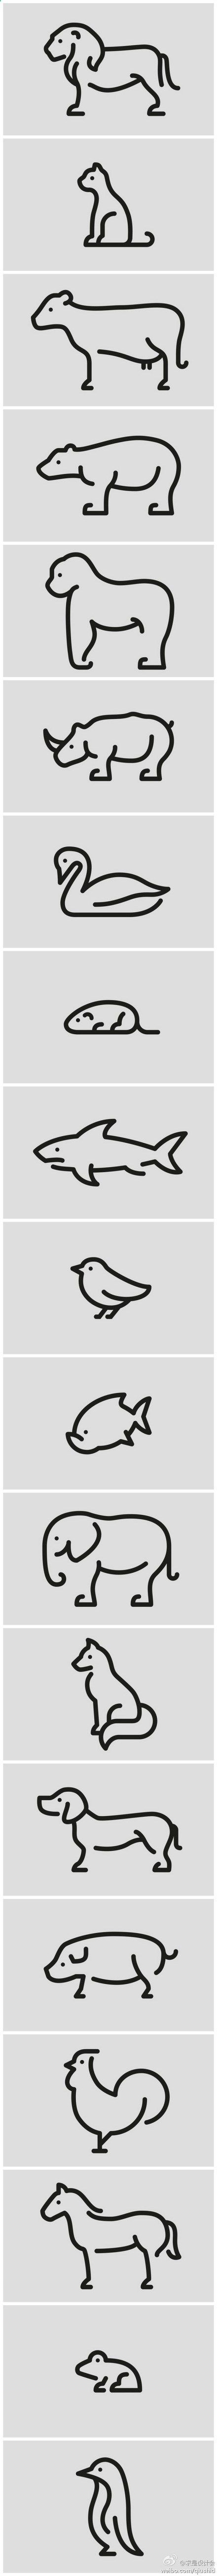 Easy to draw animals #pictograms #icons #icondesign #ramotion #dribbble #behance